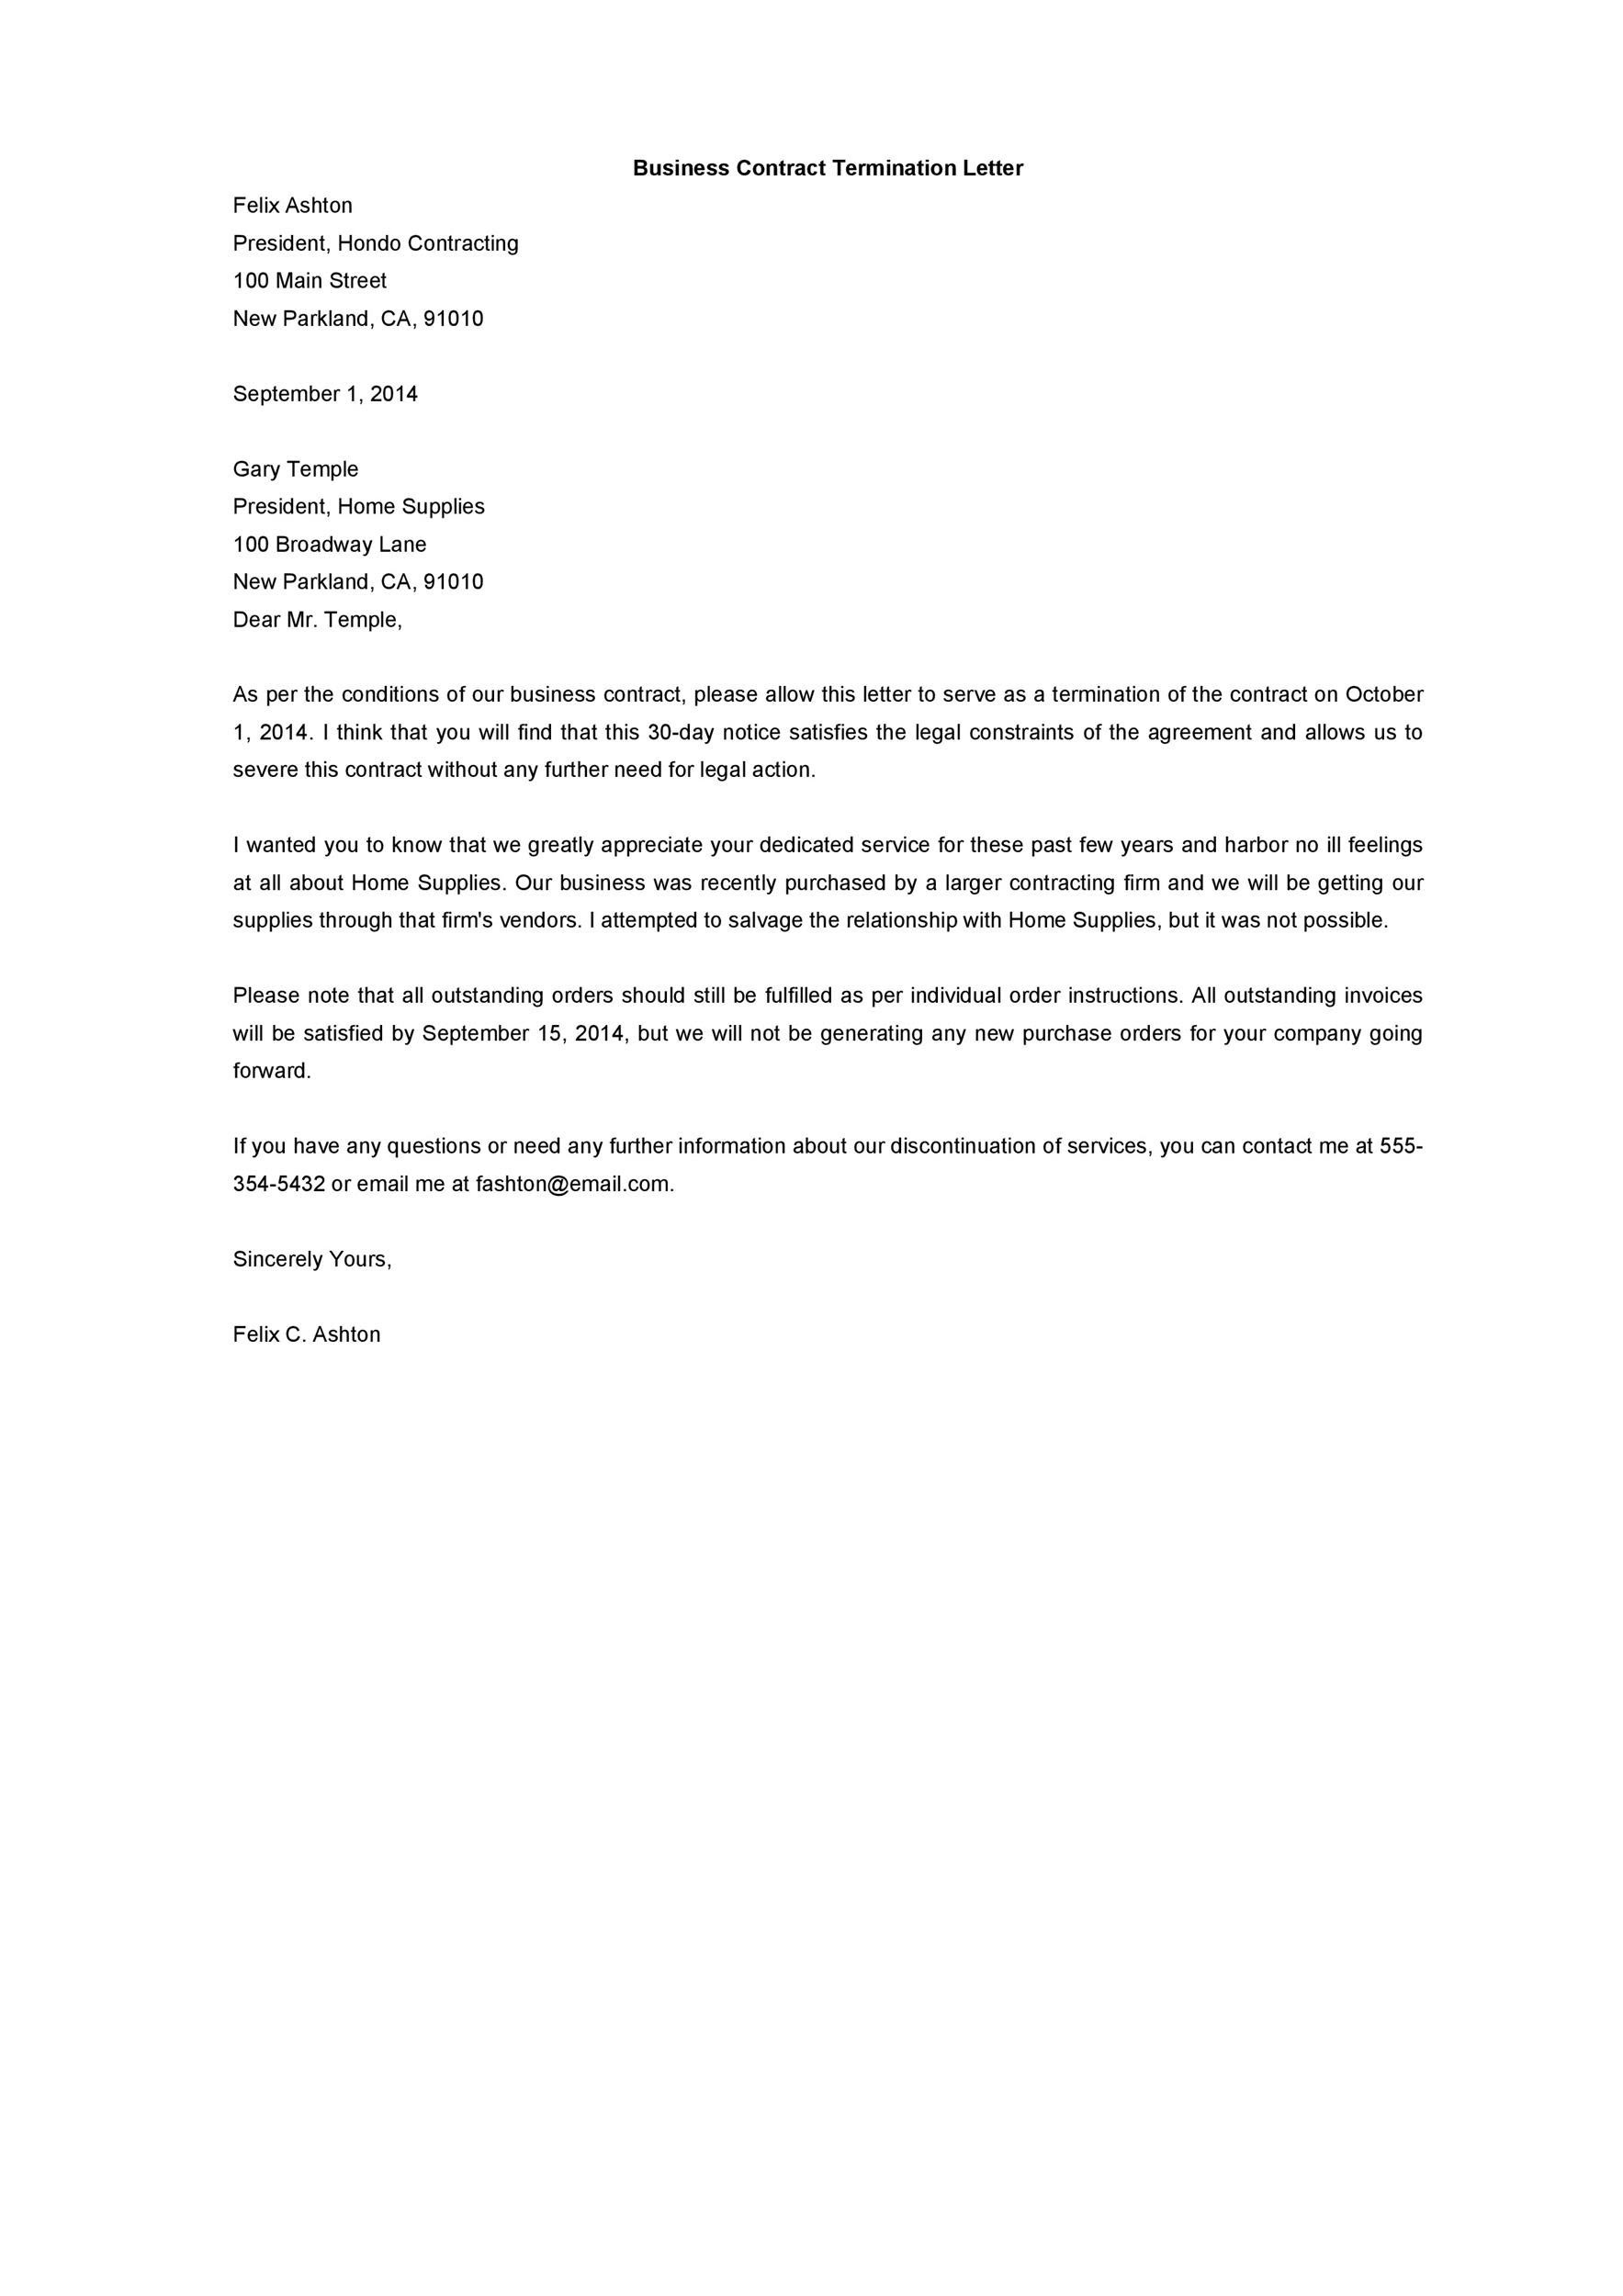 Employment Termination Letter Sample from lh4.googleusercontent.com